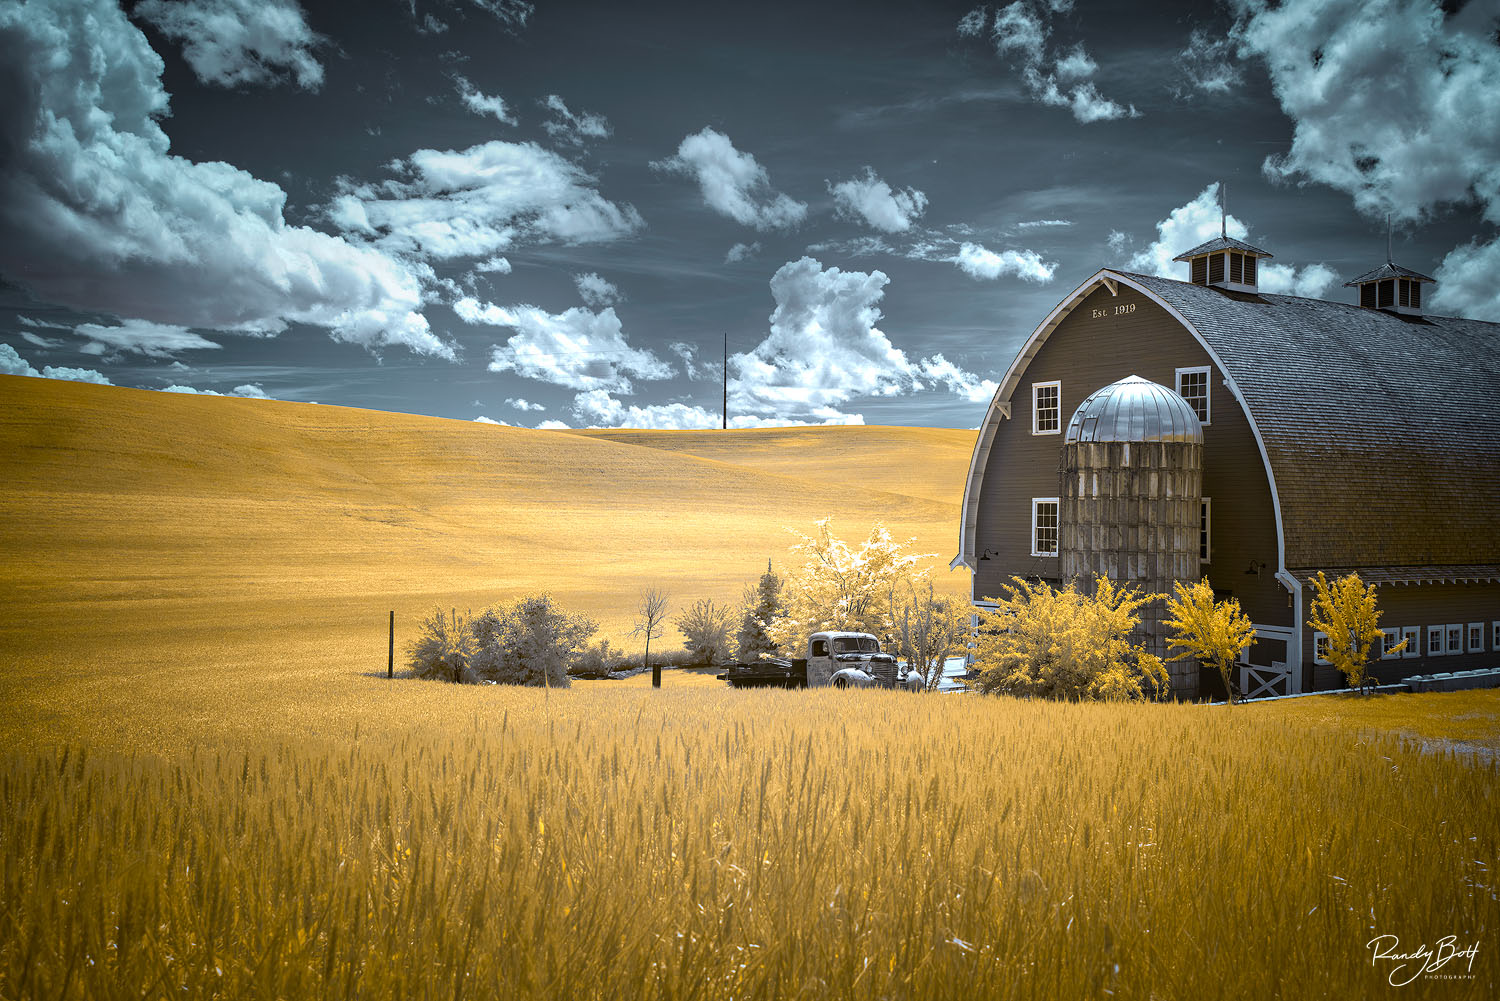 720 nm infrared image of the old truck and red barn in Colfax Washington